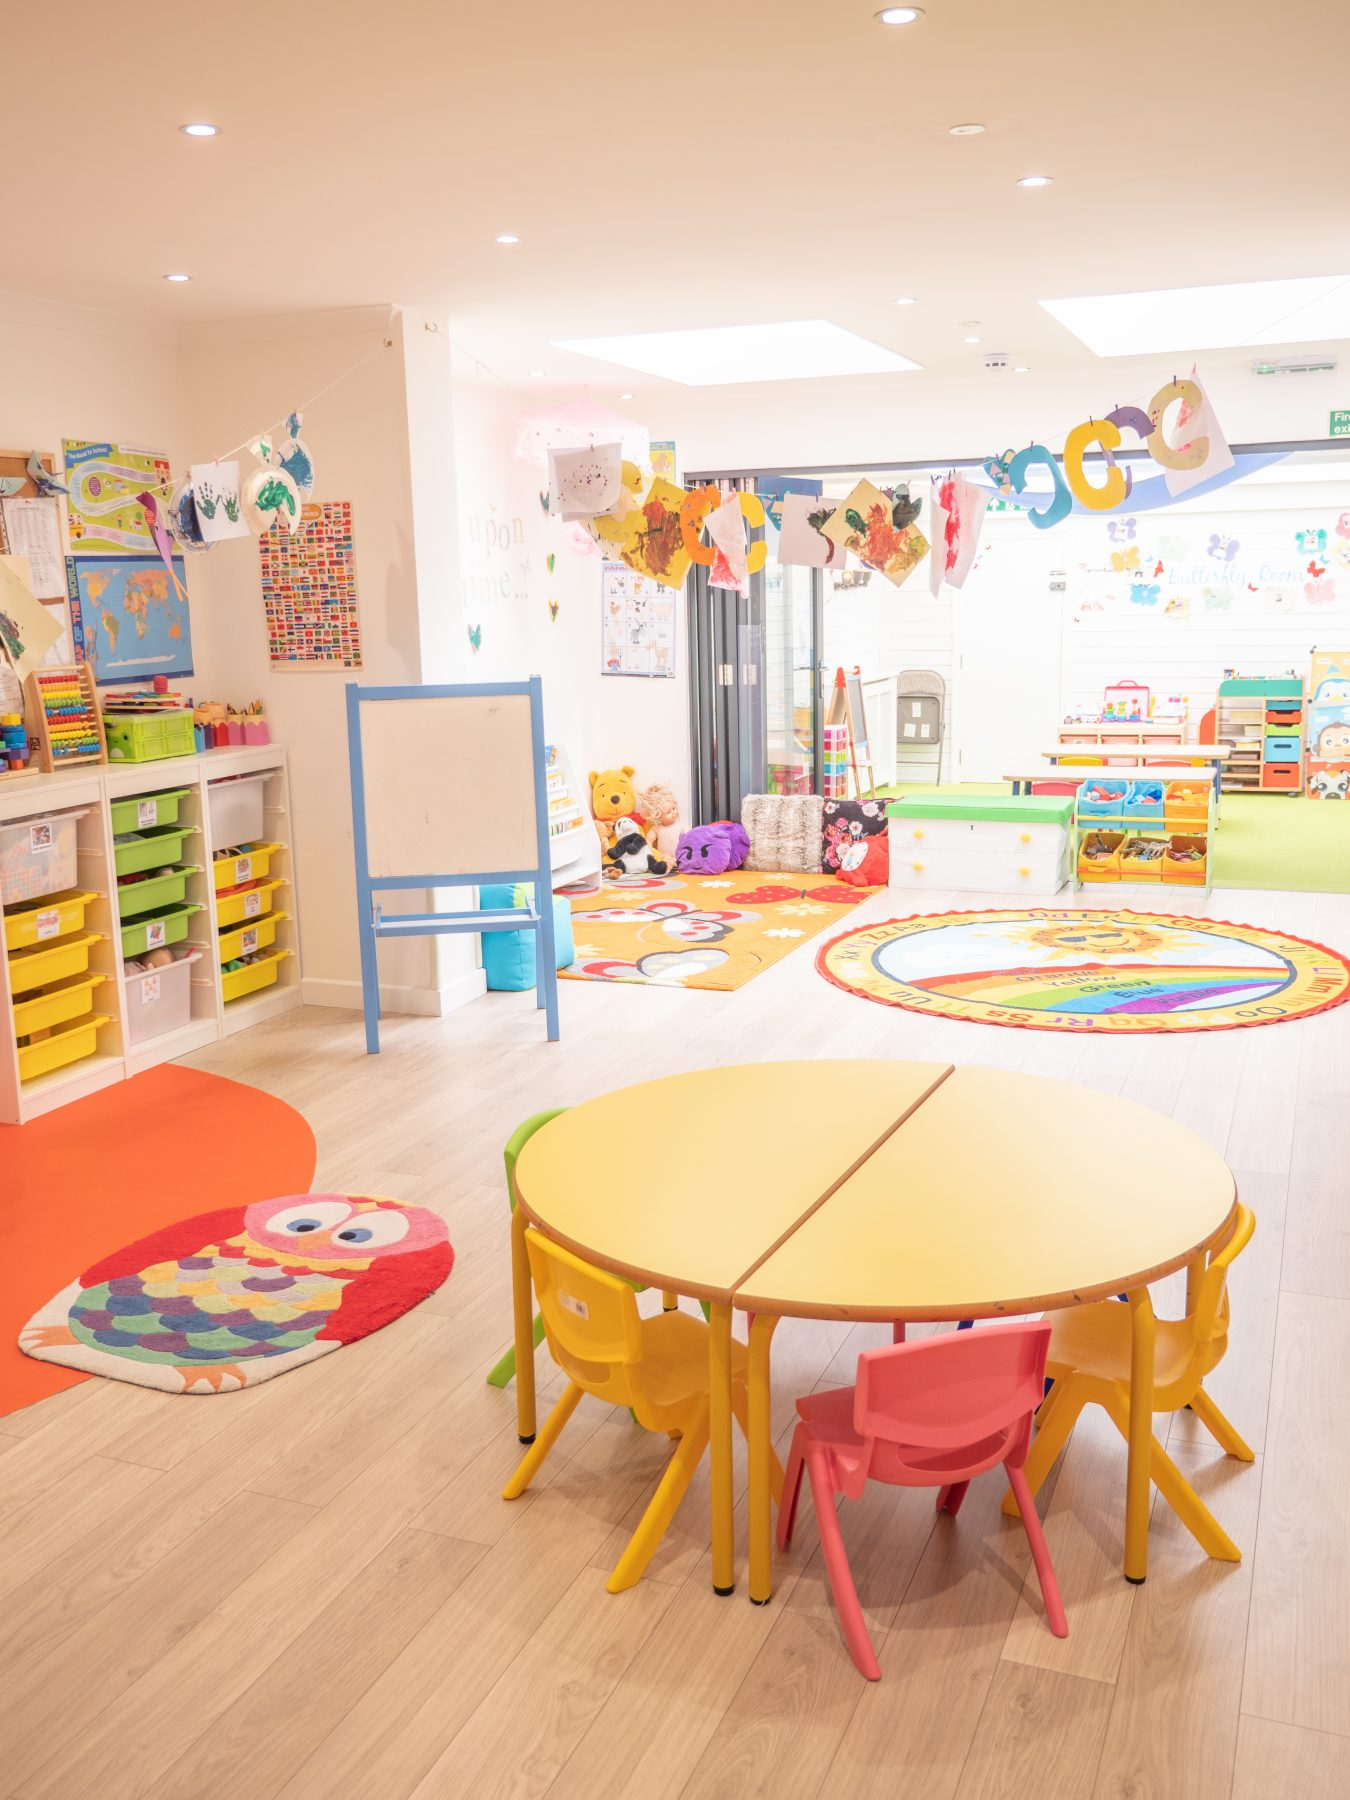 Daycare Little Angels 24/7 children's play room